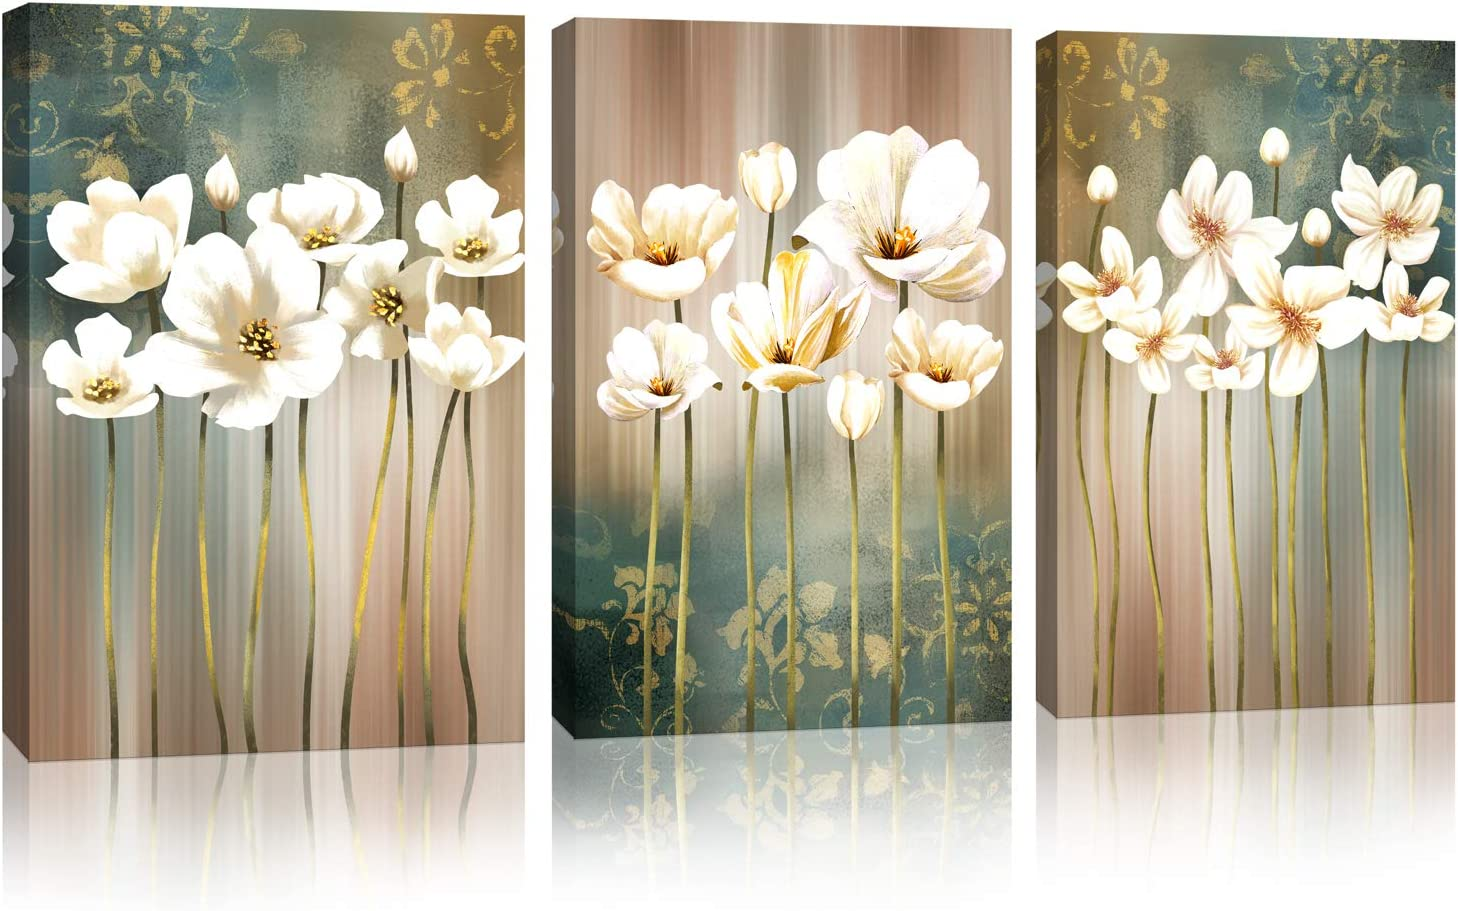 Amazon Com Modern Flower Artwork Canvas Wall Art Bathroom Wall Decor White Blossom Brown Green Abstract Flower Background Canvas Painting Prints Picture Bedroom Kitchen Home Decoration Size 12 X 16 X 3 Pieces Posters